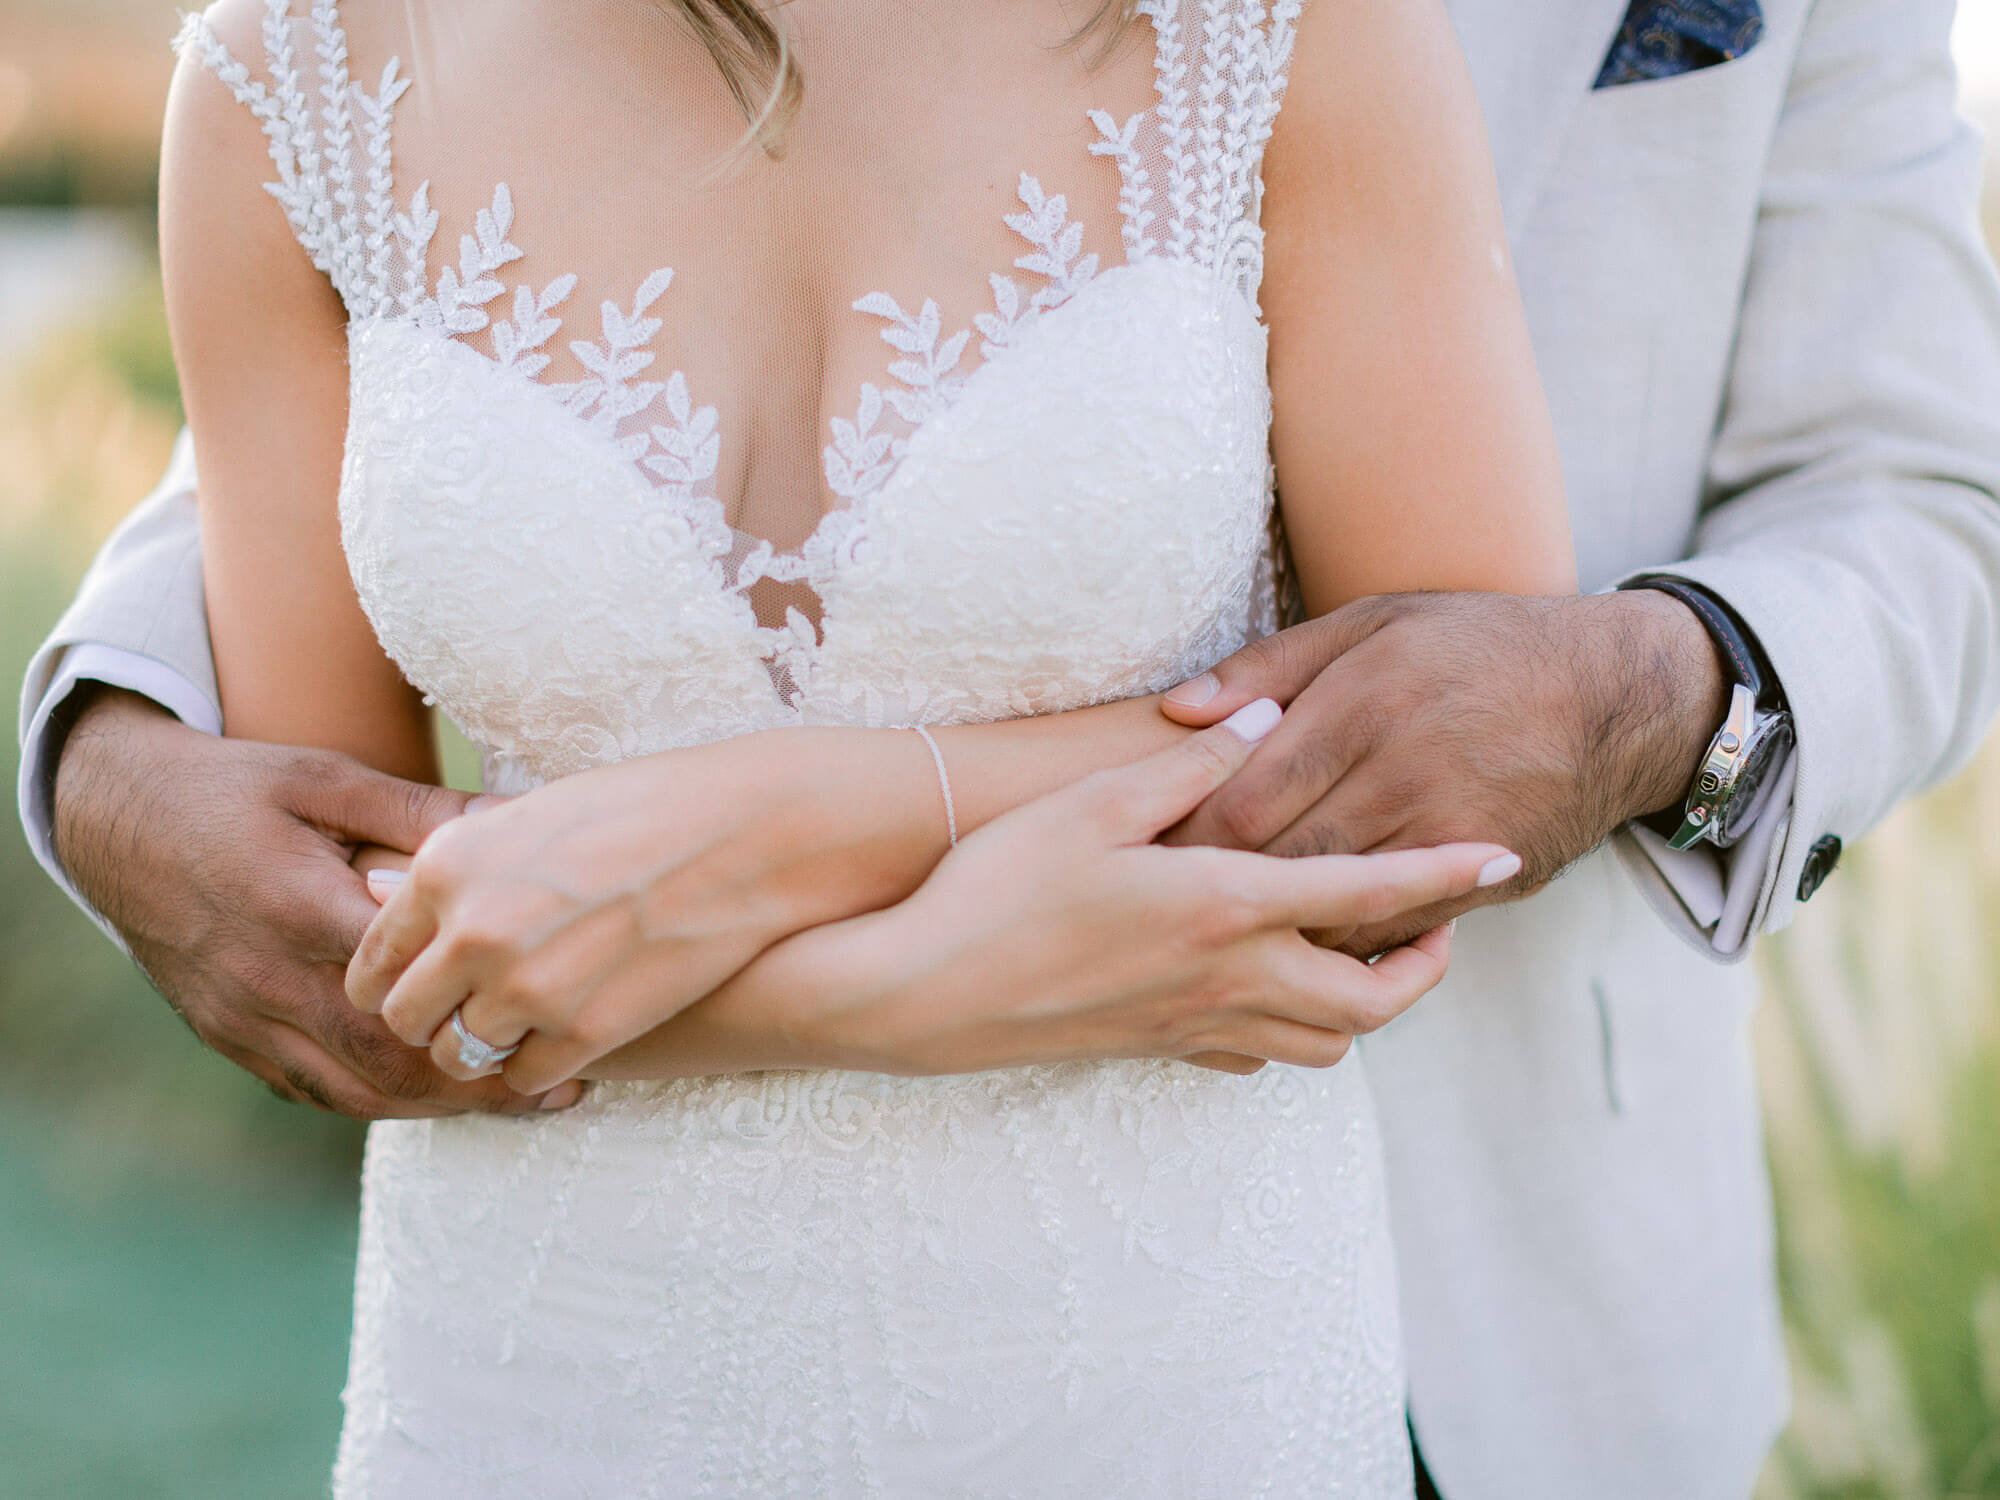 bride and groom embrace close-up at a destination wedding in the Algarve by Portugal Wedding Photographer